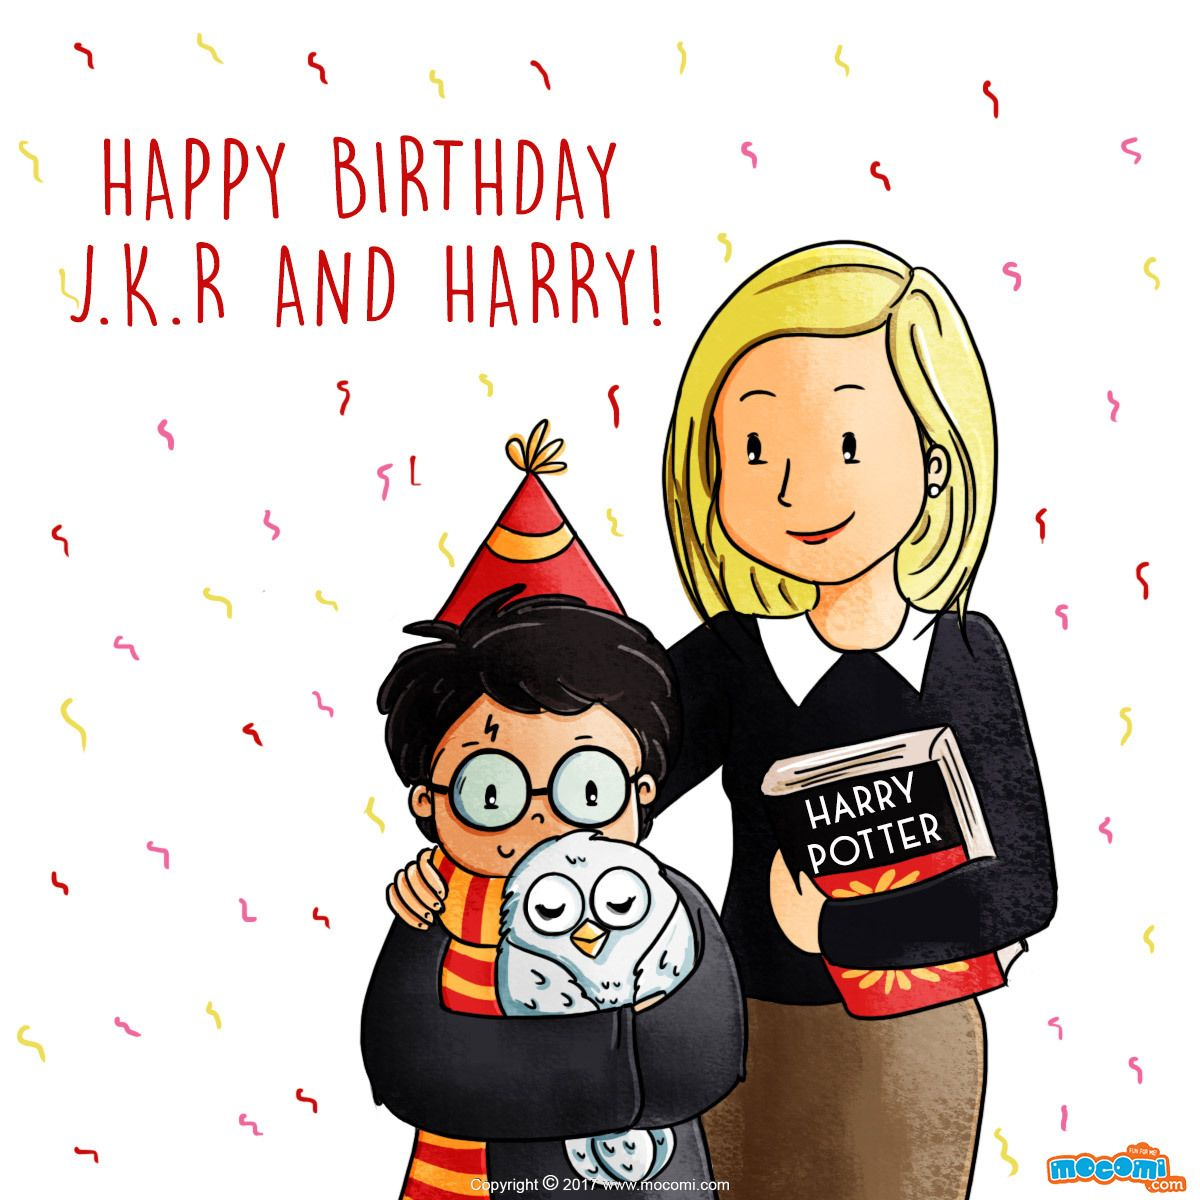 Happy Birthday Harry Potter And Jk Rowling July 31st By Mocomi